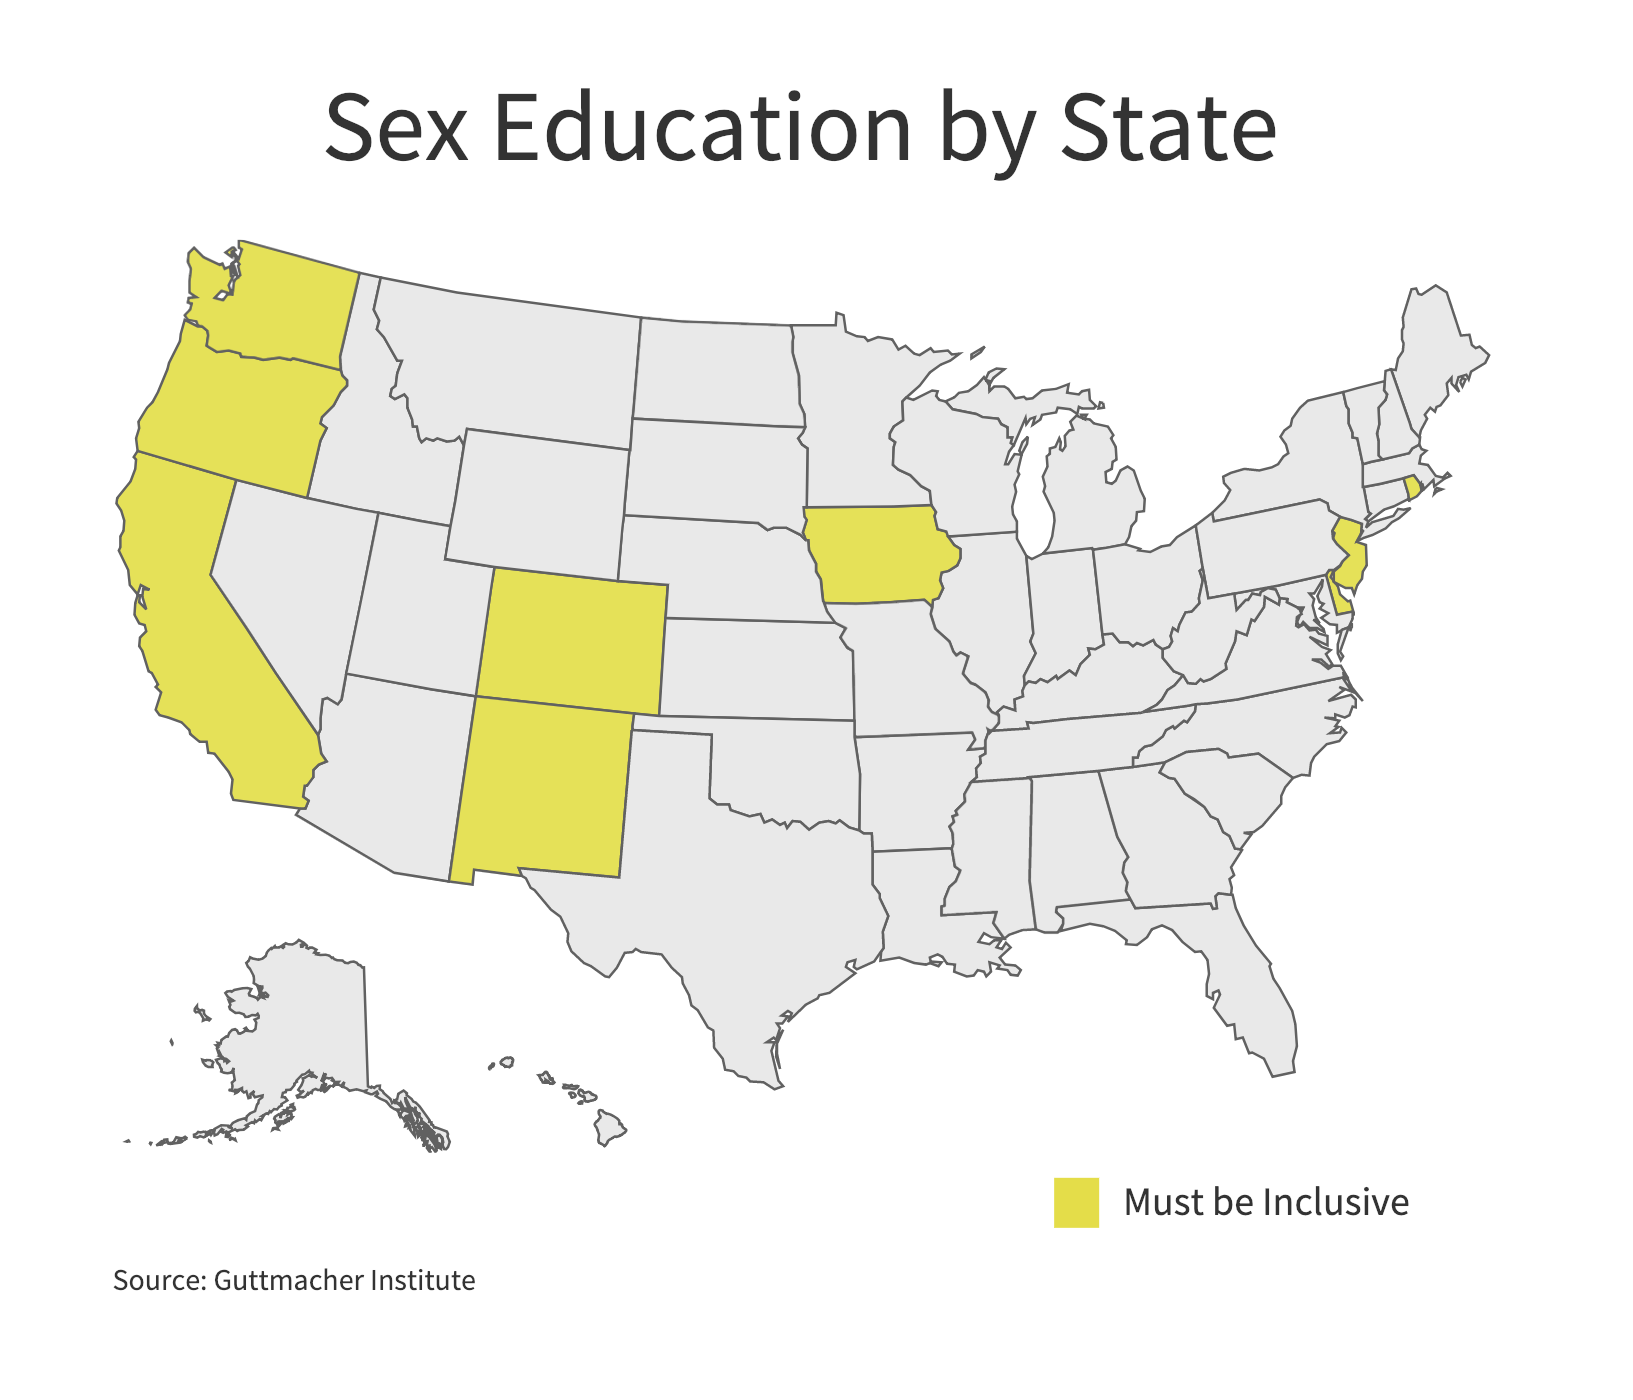 Nine states require that when sexual education is provided it be inclusive of sexual orientations. (Charts by Ester Wells/MNS)